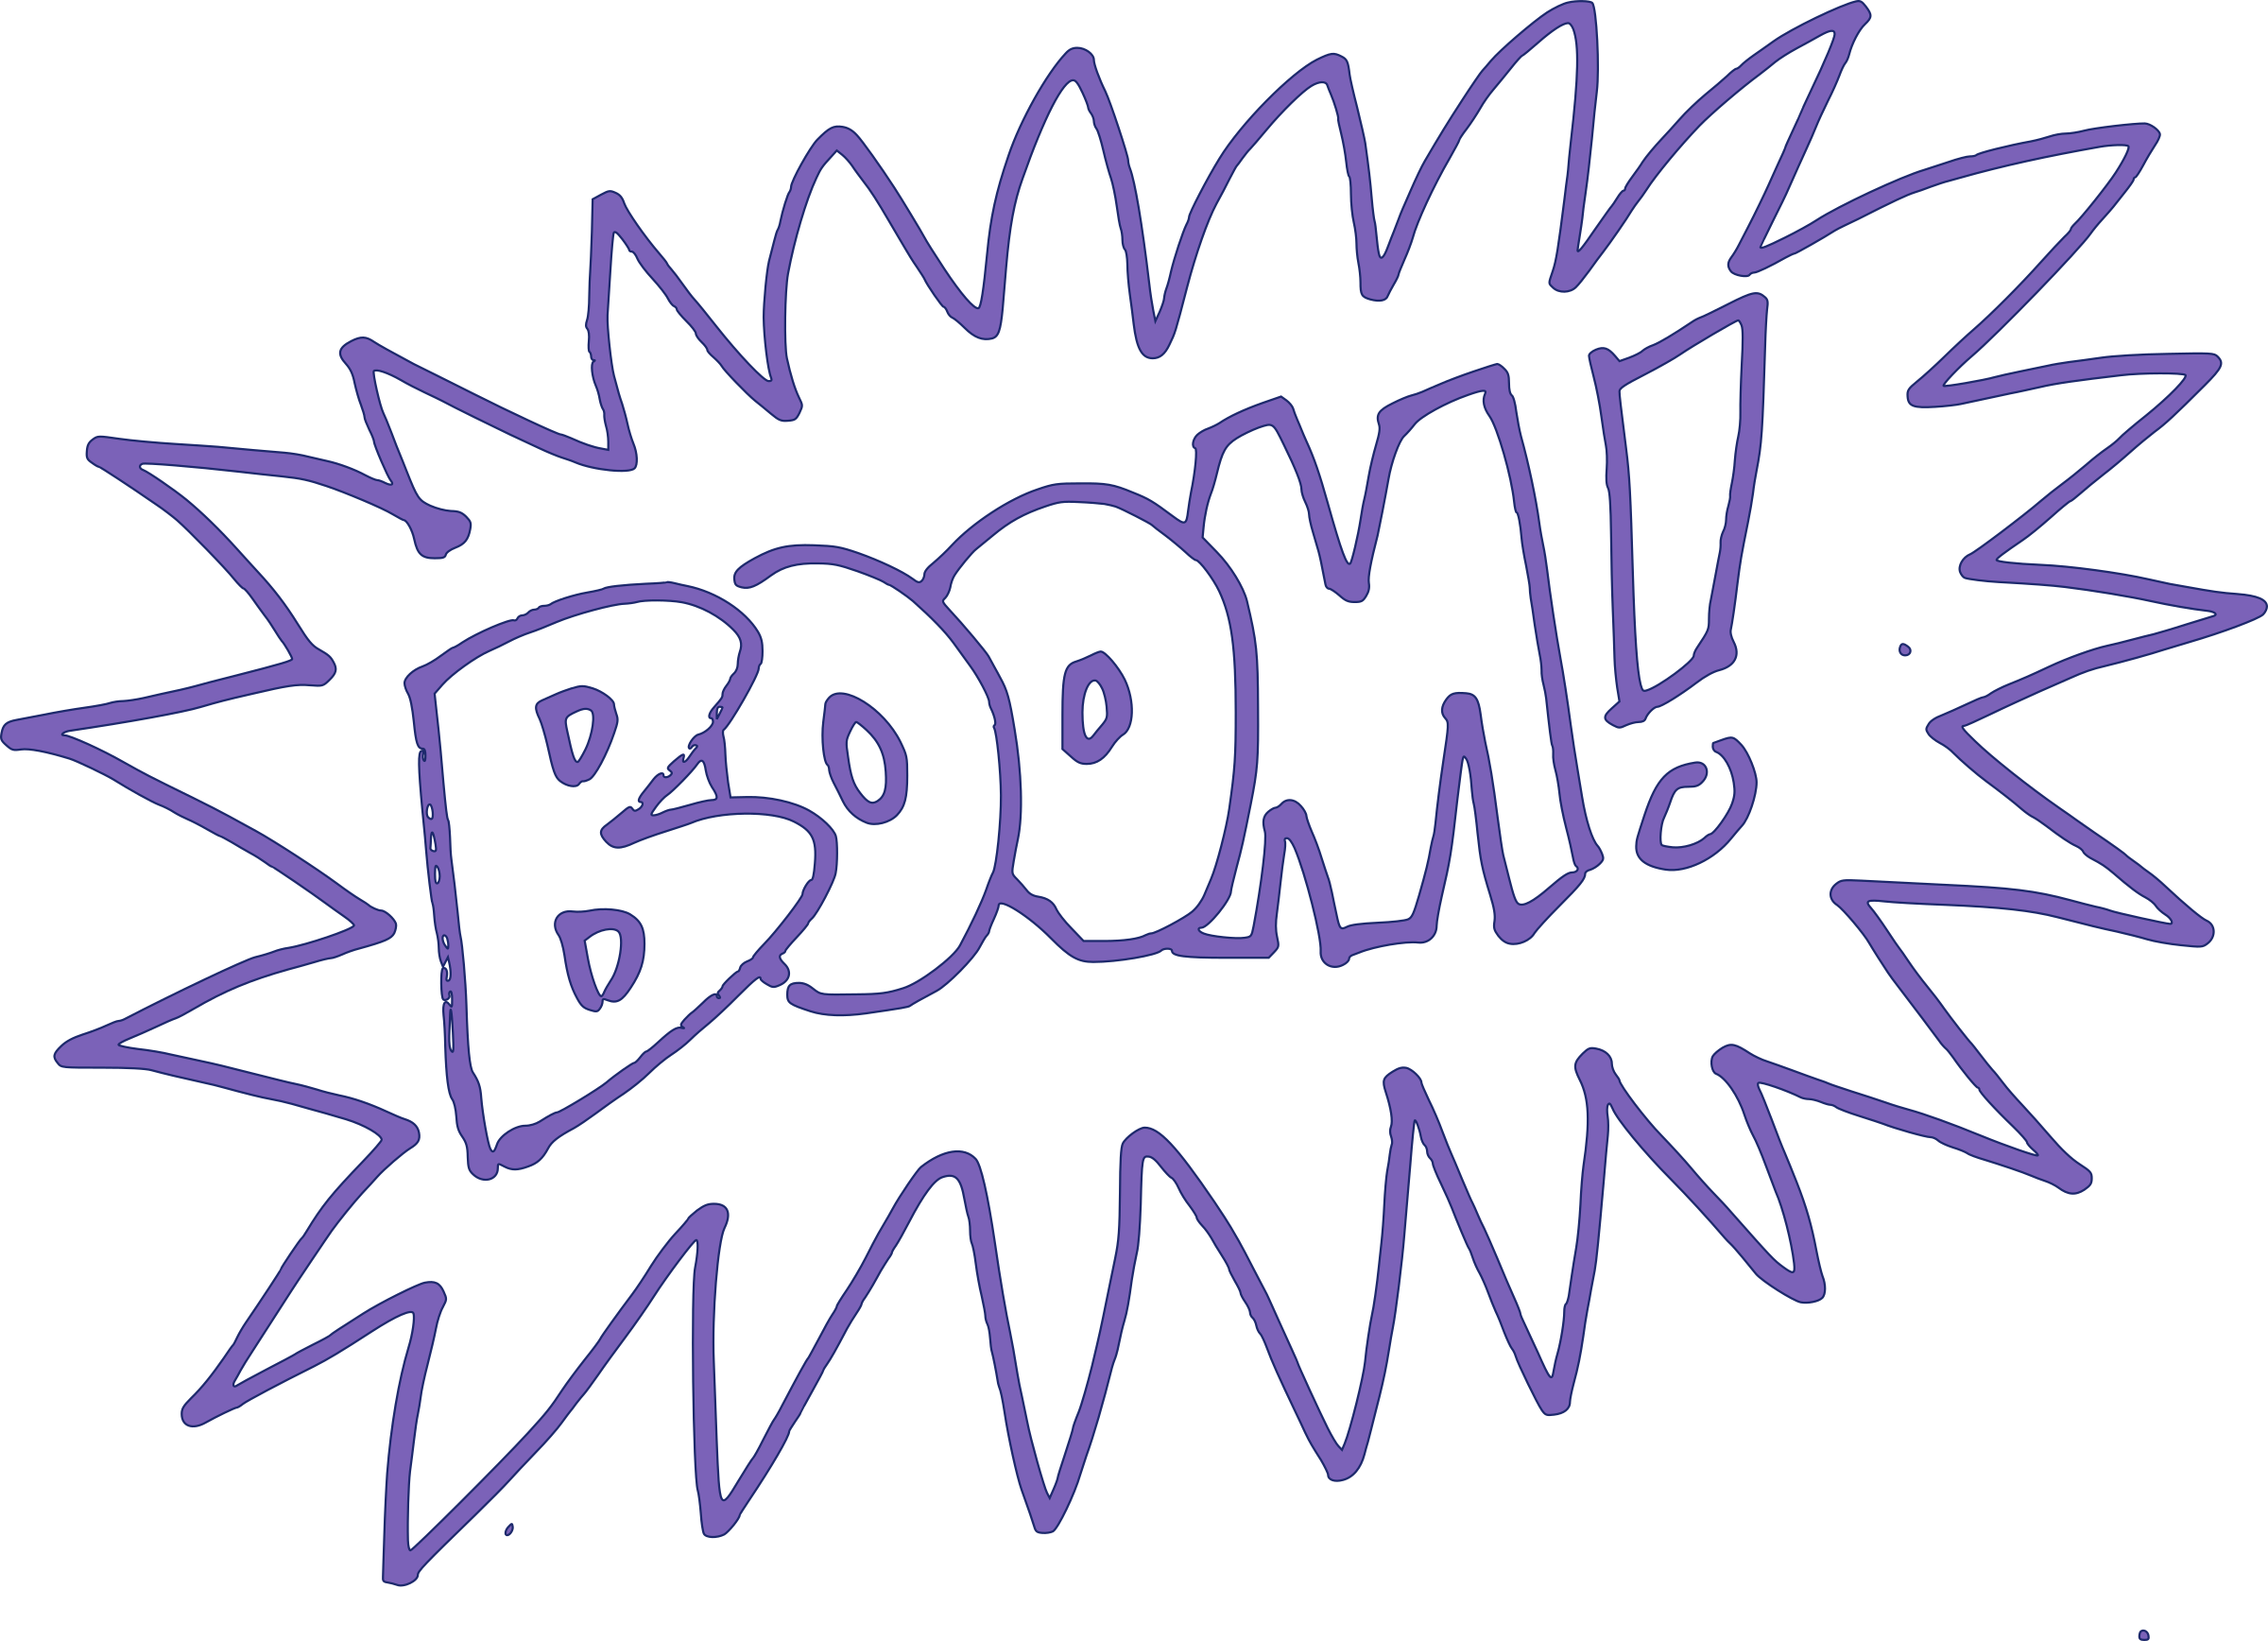 Boom! by wesd440